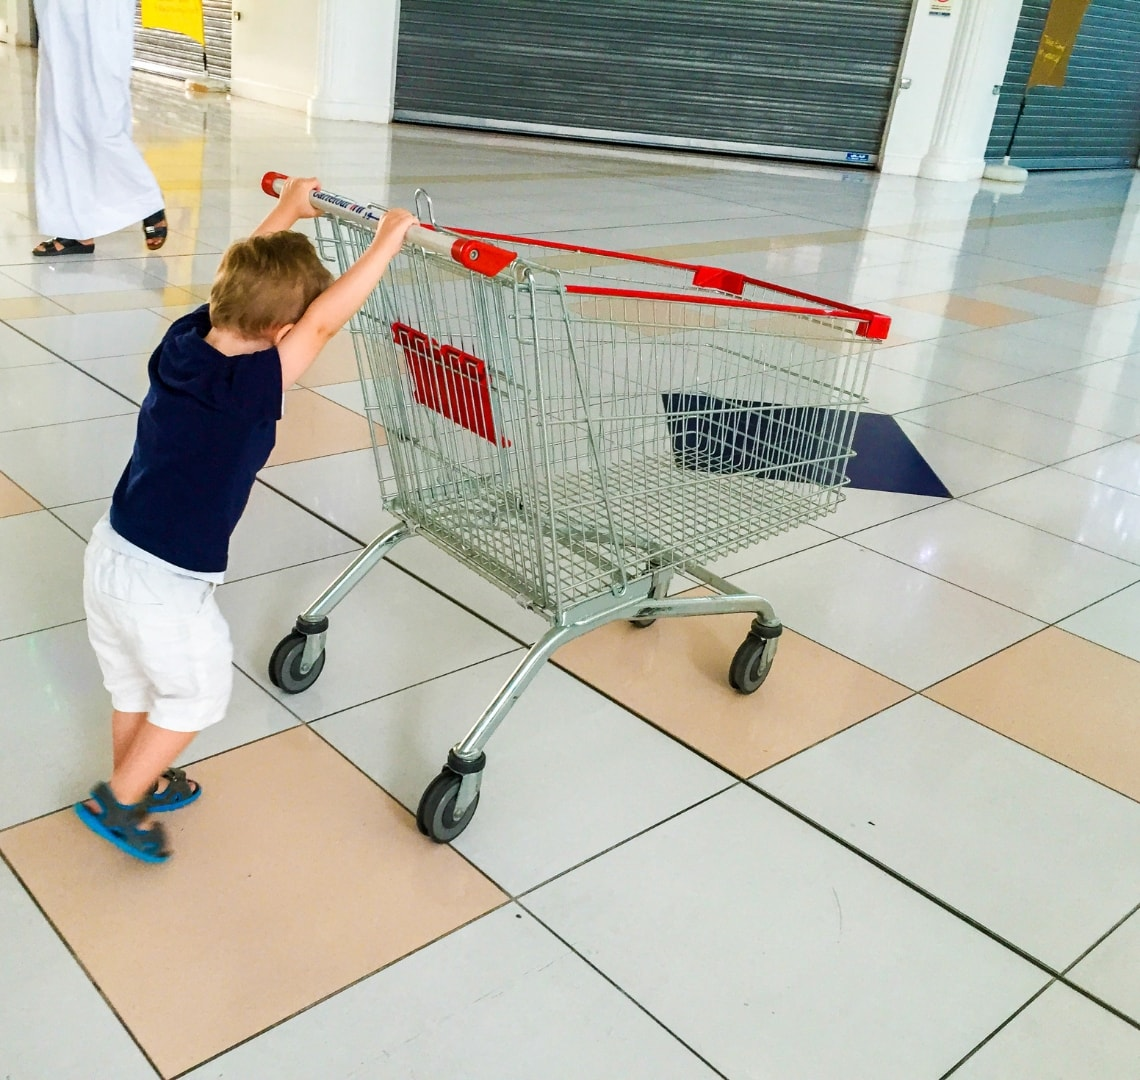 Reasons-To-Travel-Thing-1-pushing-a-shopping-trolley